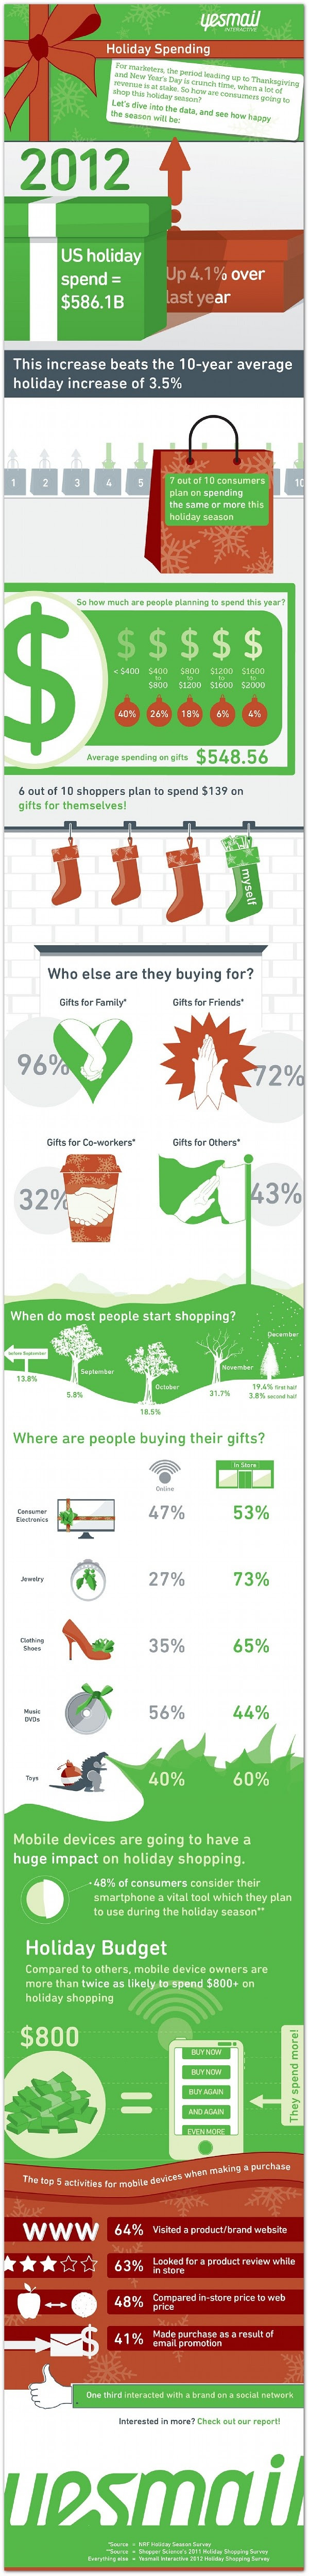 American shoppers will spend $